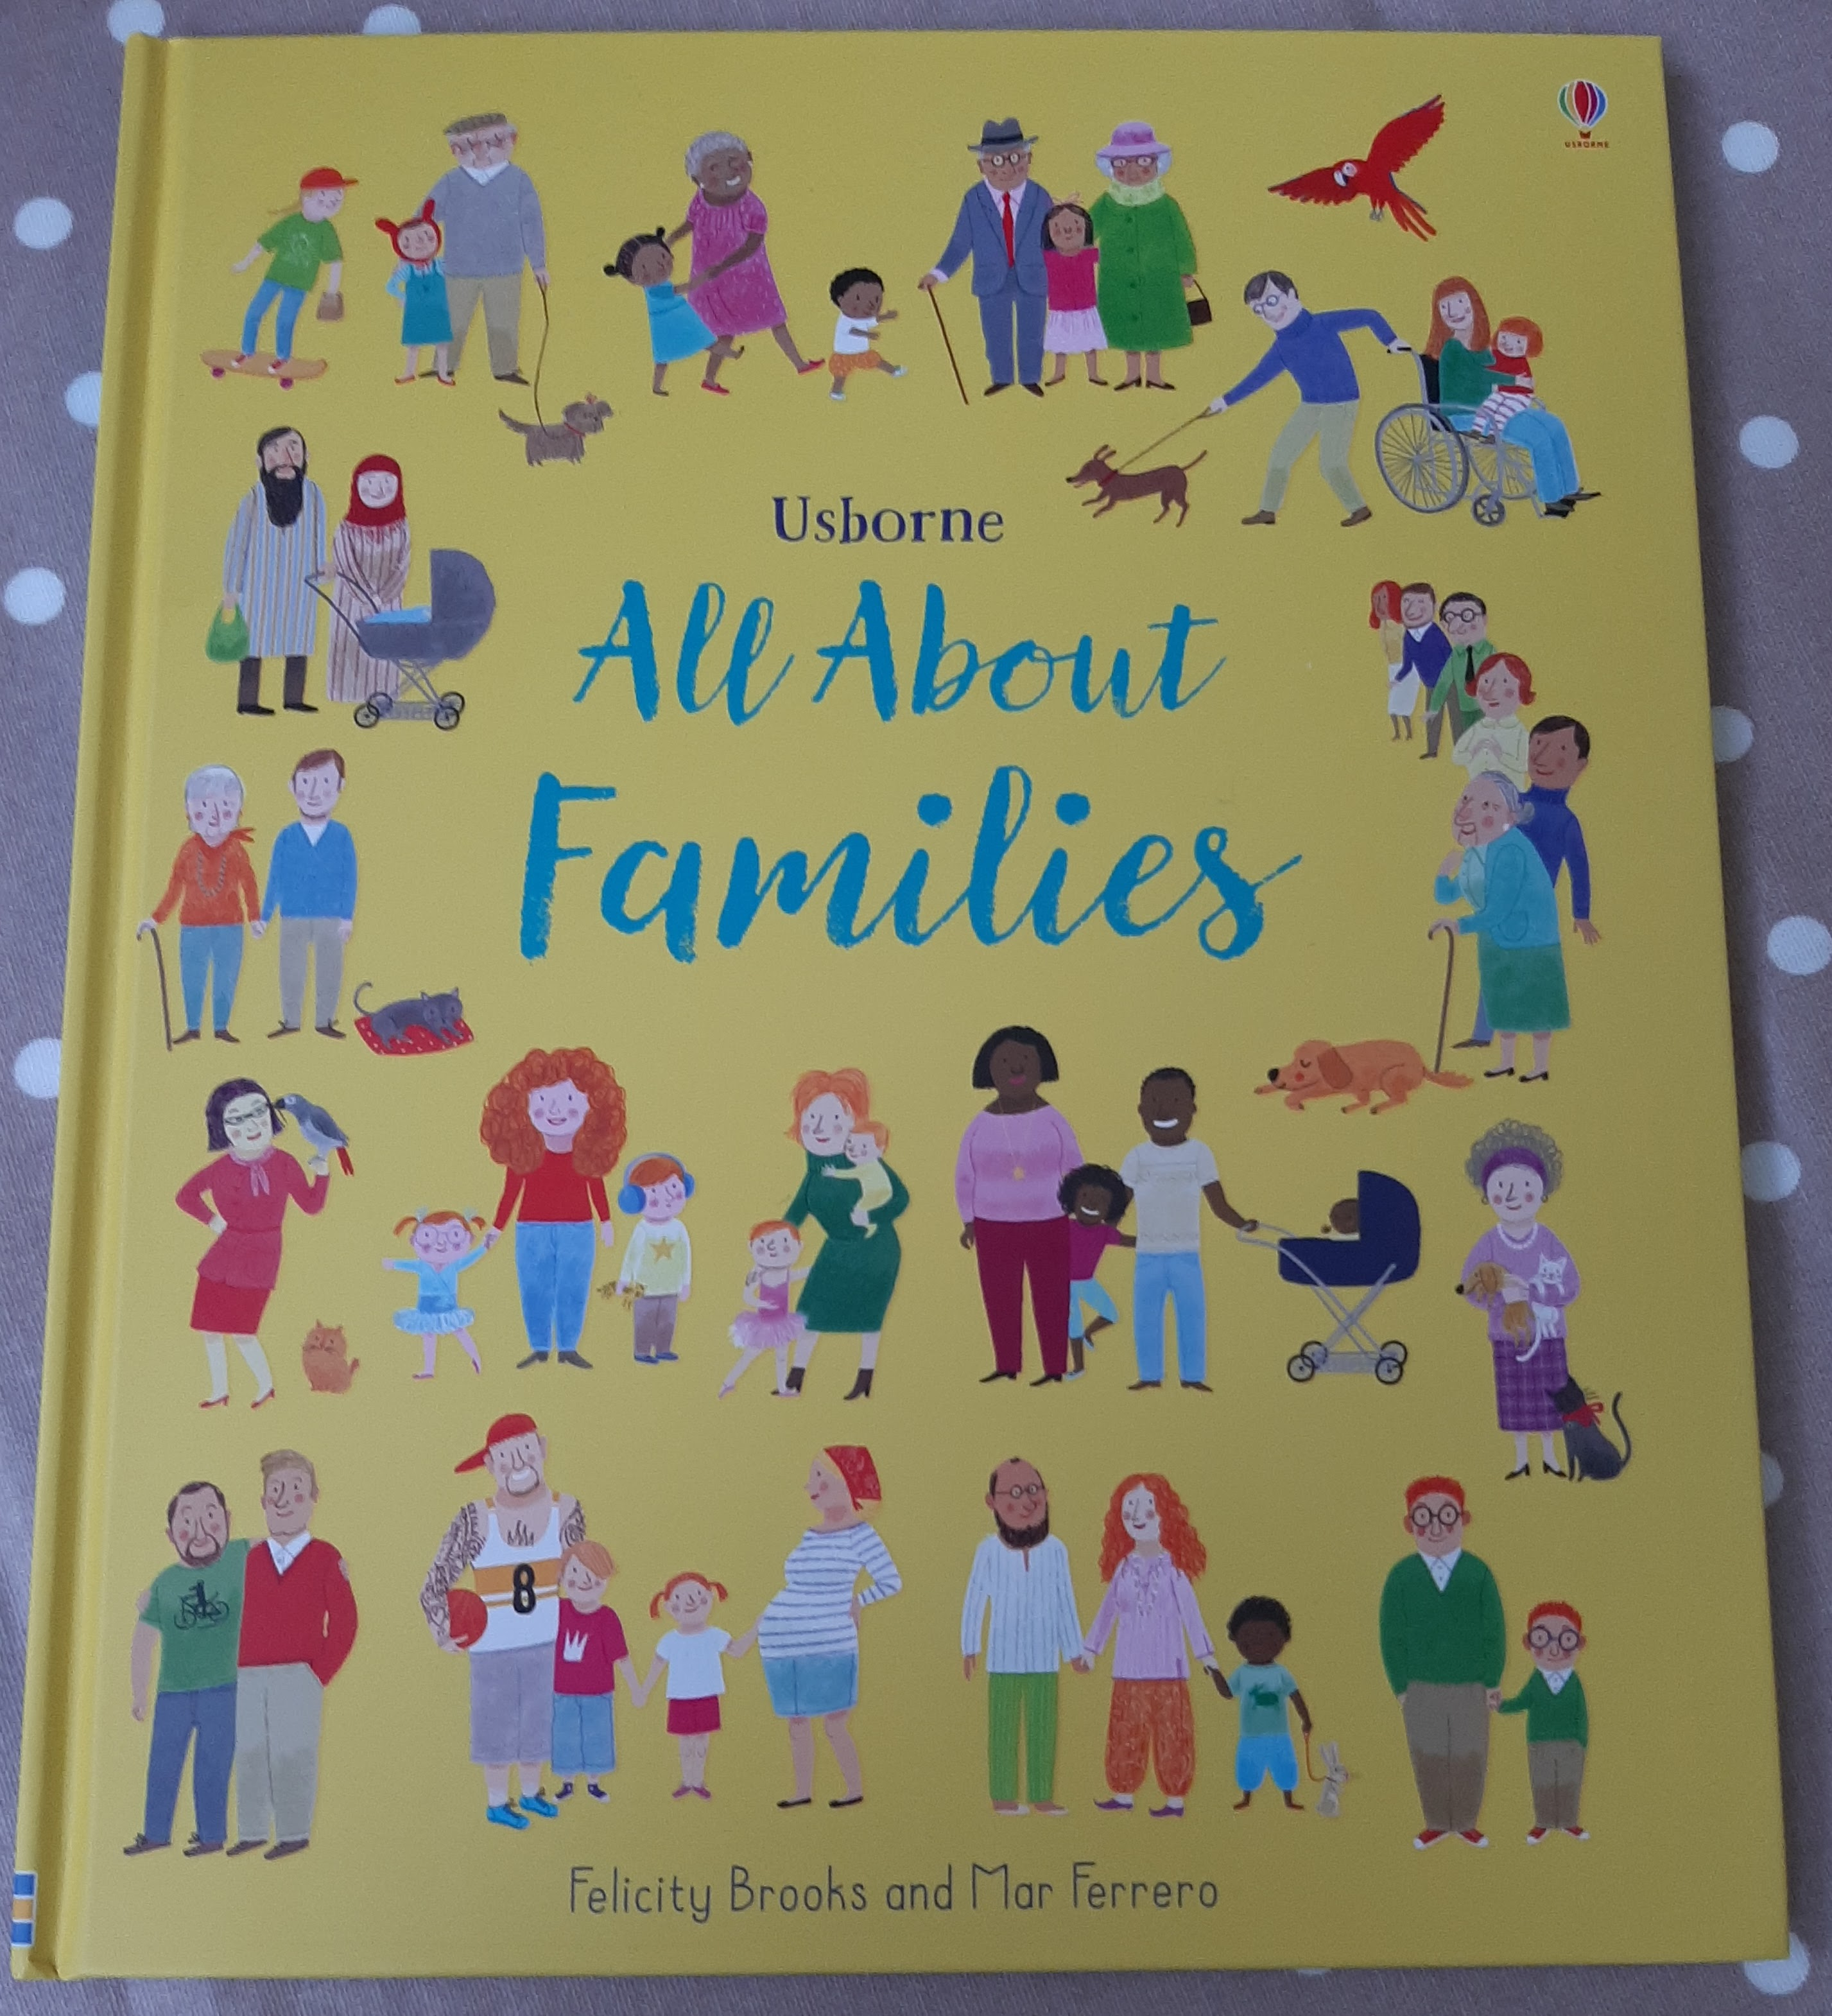 All About Families Image